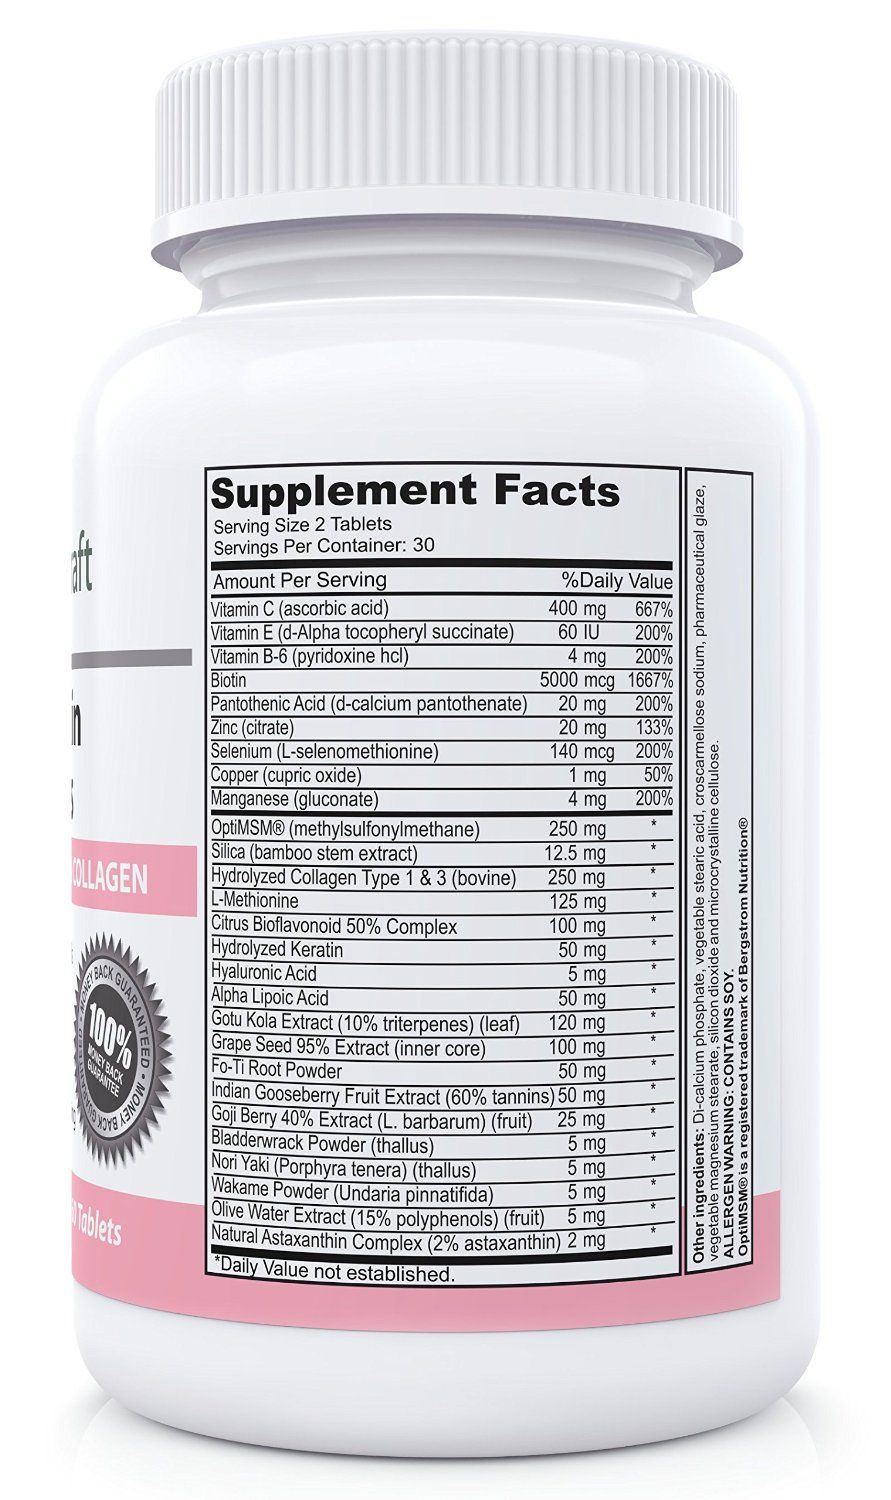 VM1000304086 - #1 Hair, Skin & Nails Supplement with 5000mcg of ...